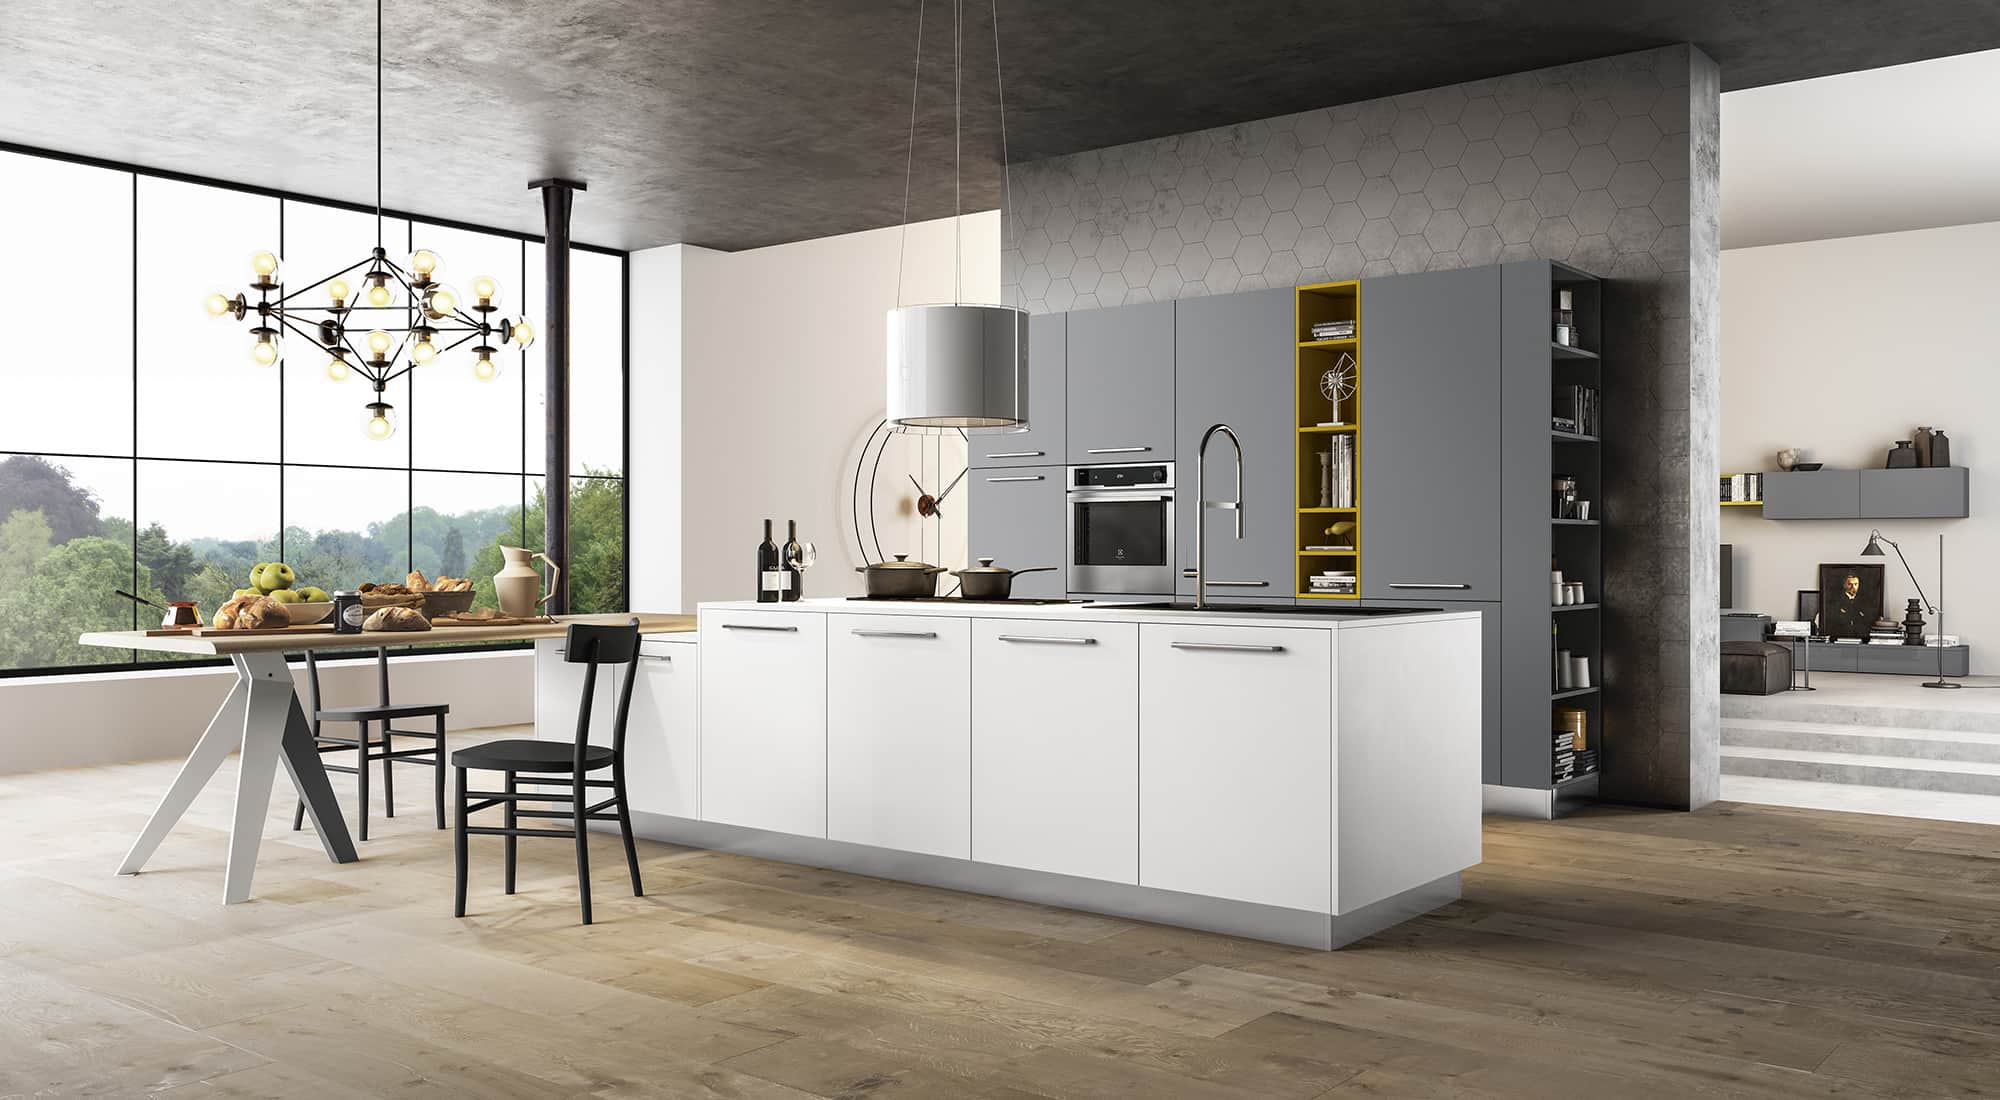 Cucine open space con isola ~ avienix.com for .